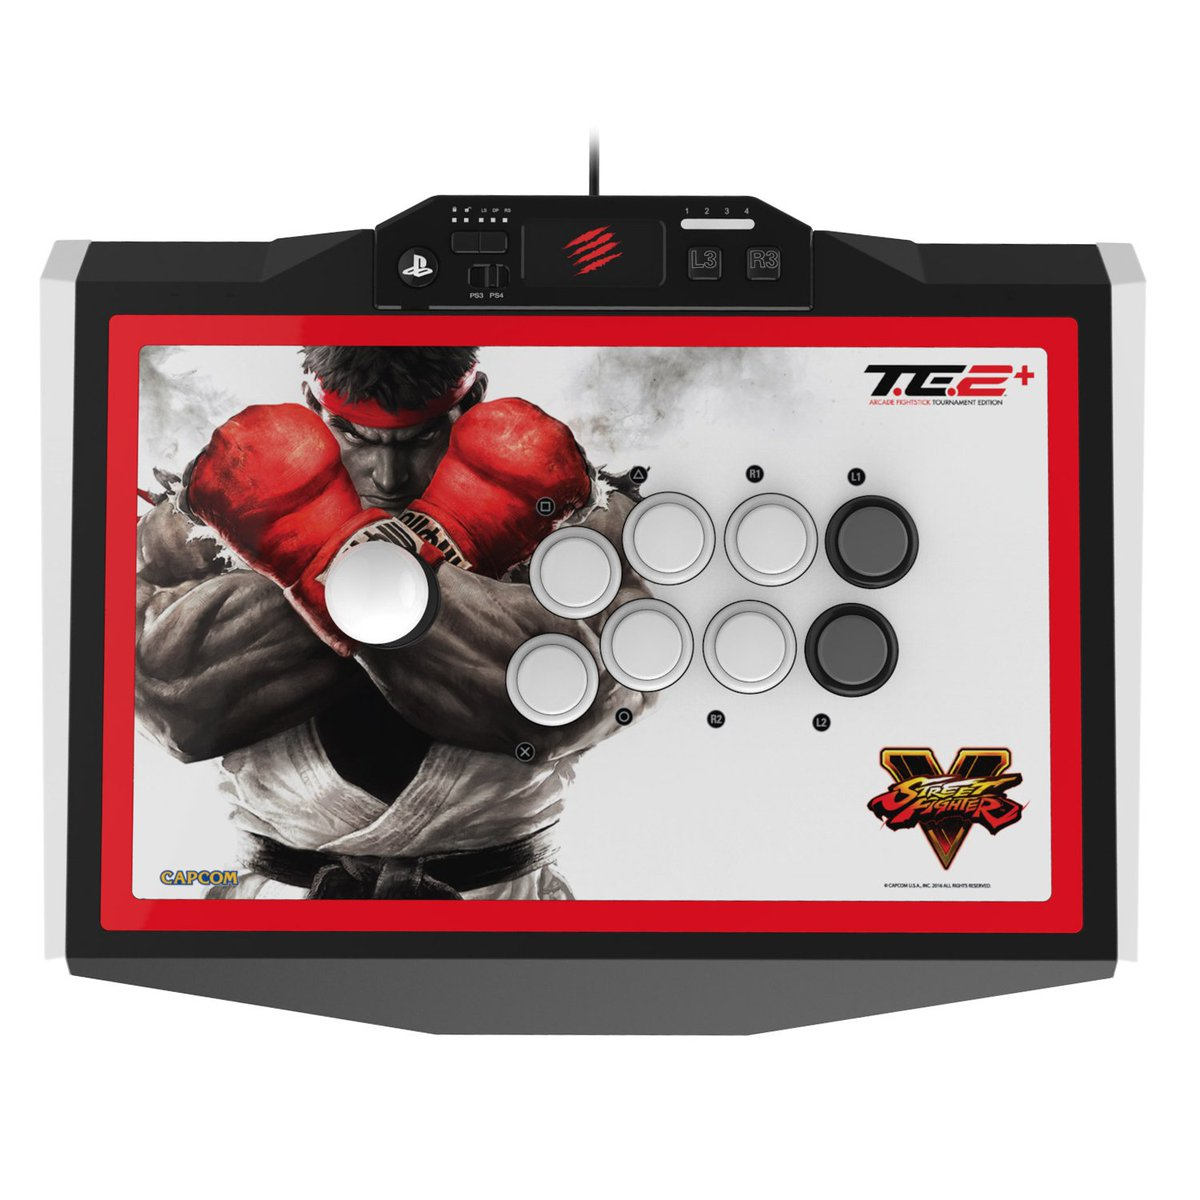 mad catz on twitter have a te2 or te2 photoshop template for